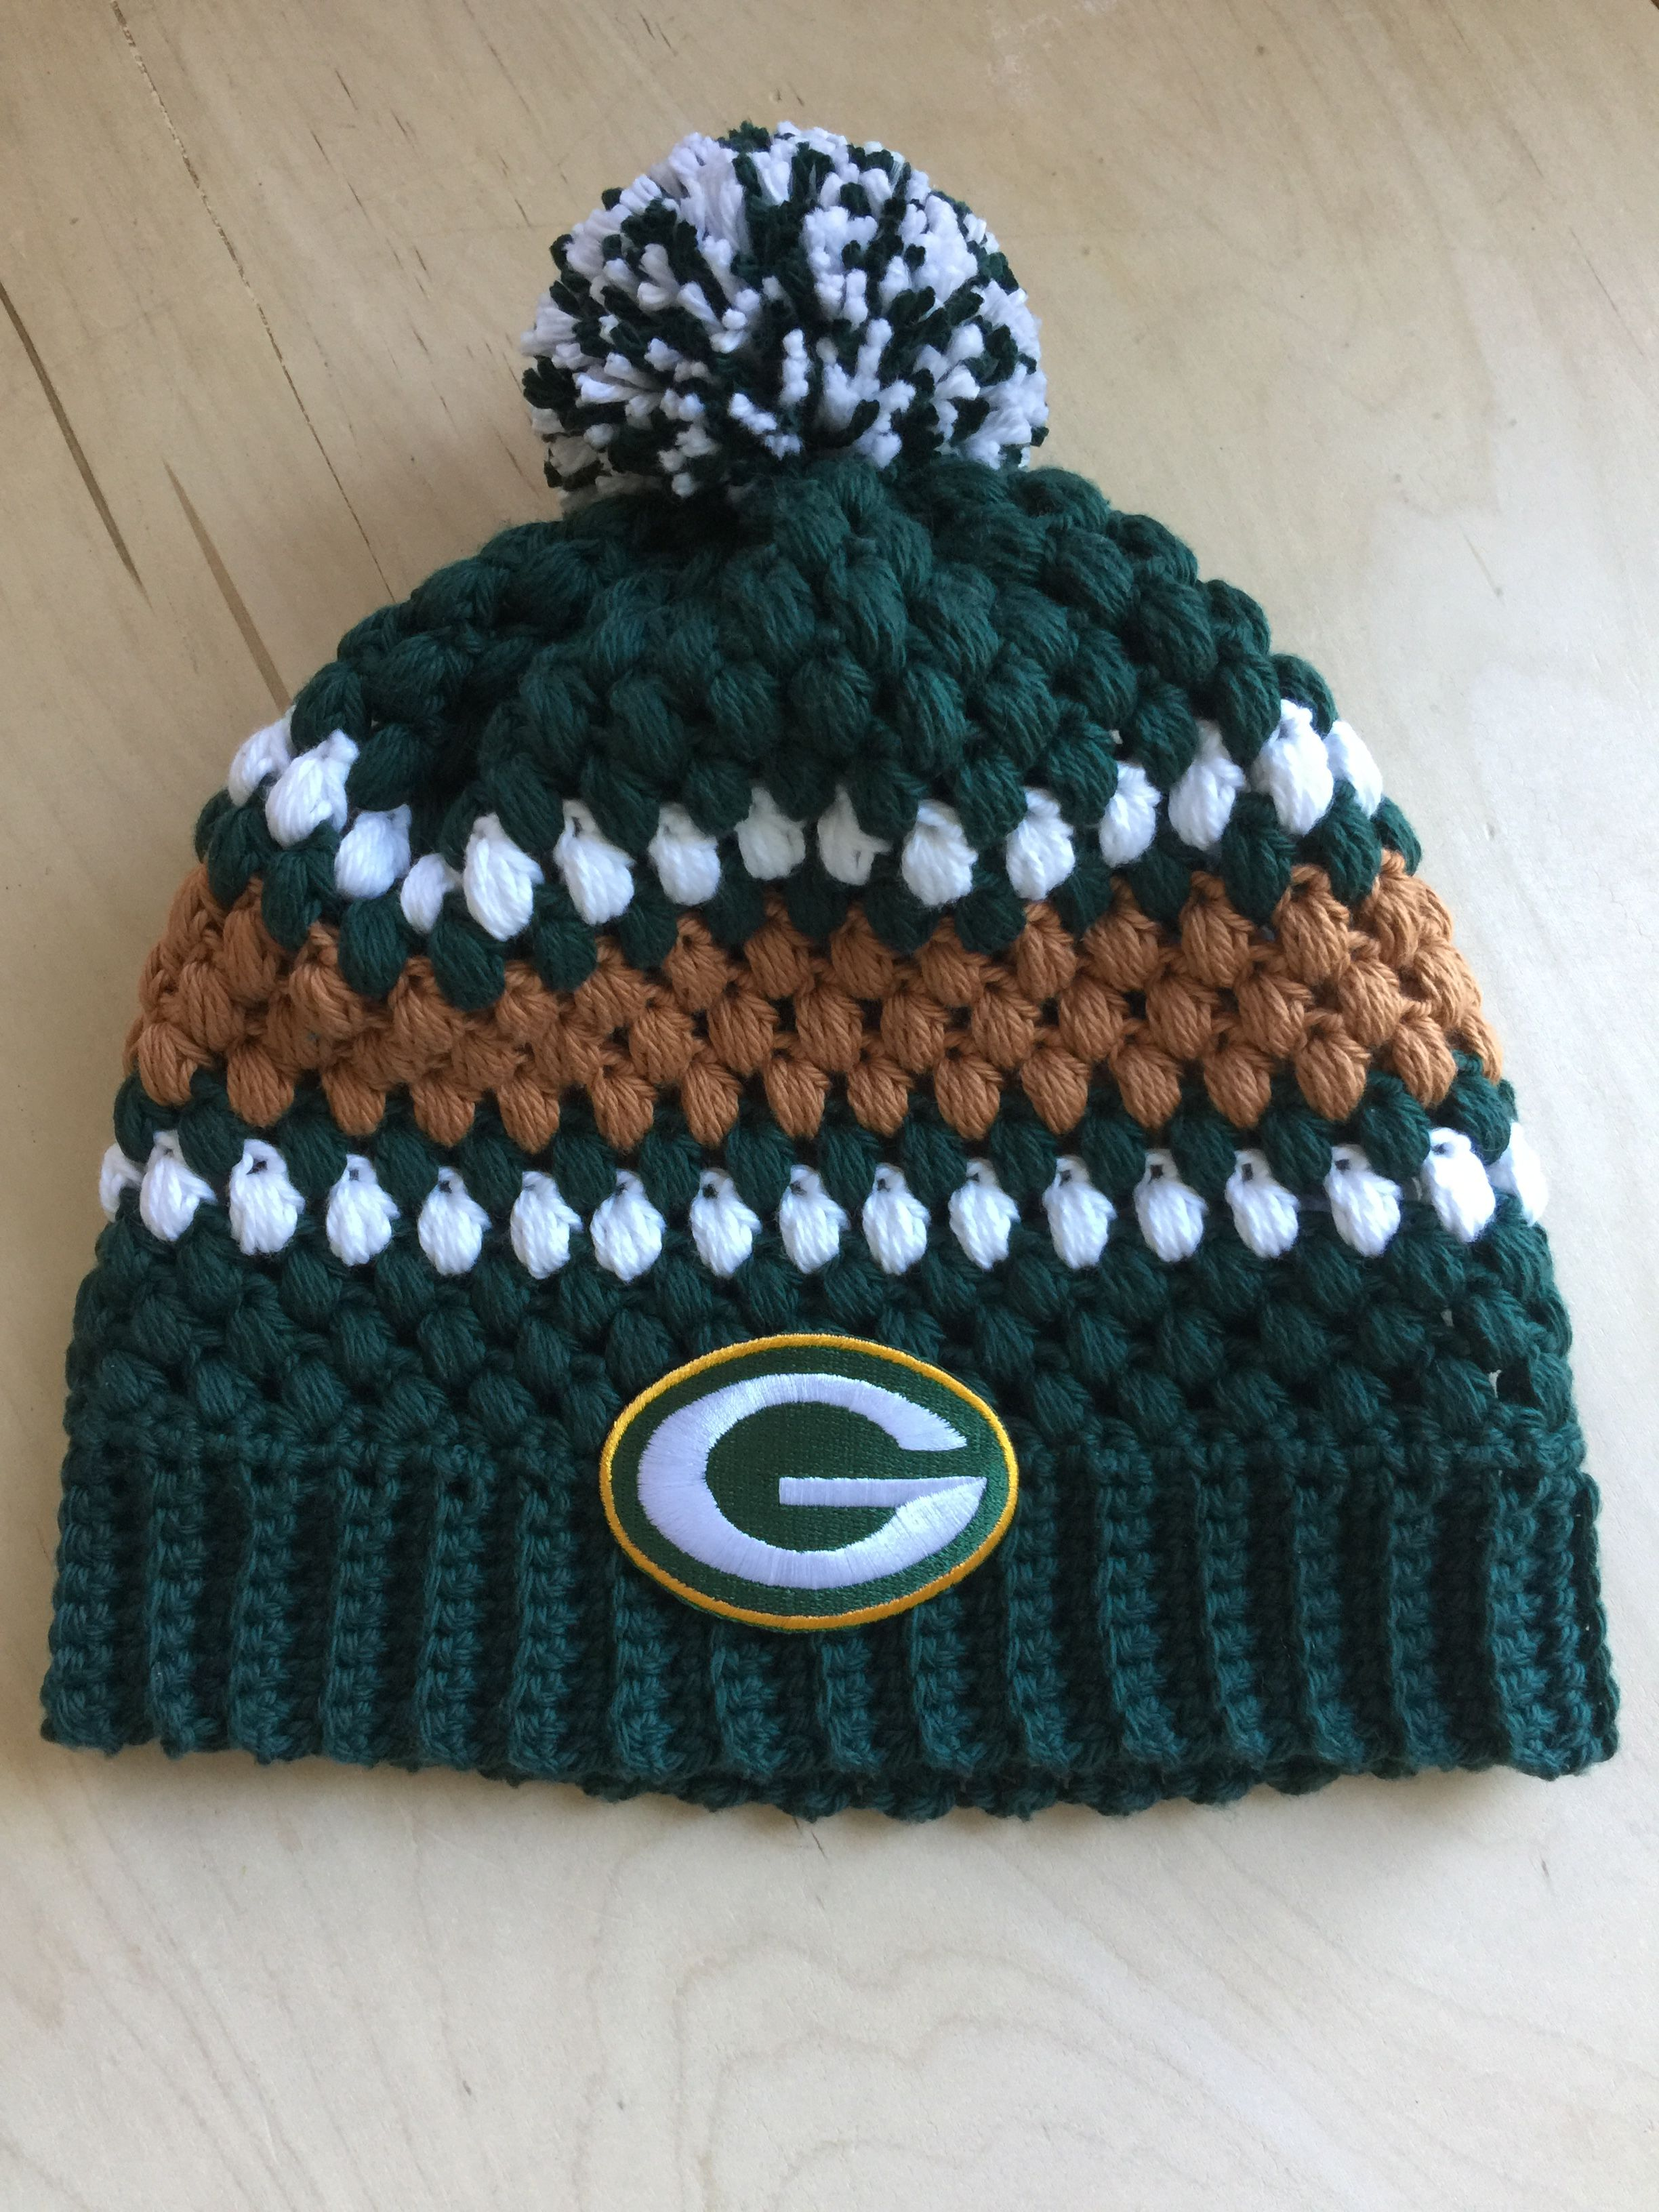 Crochet green bay packers hat fb page a girly momma of boys crochet green bay packers hat fb page a girly momma of boys bankloansurffo Choice Image